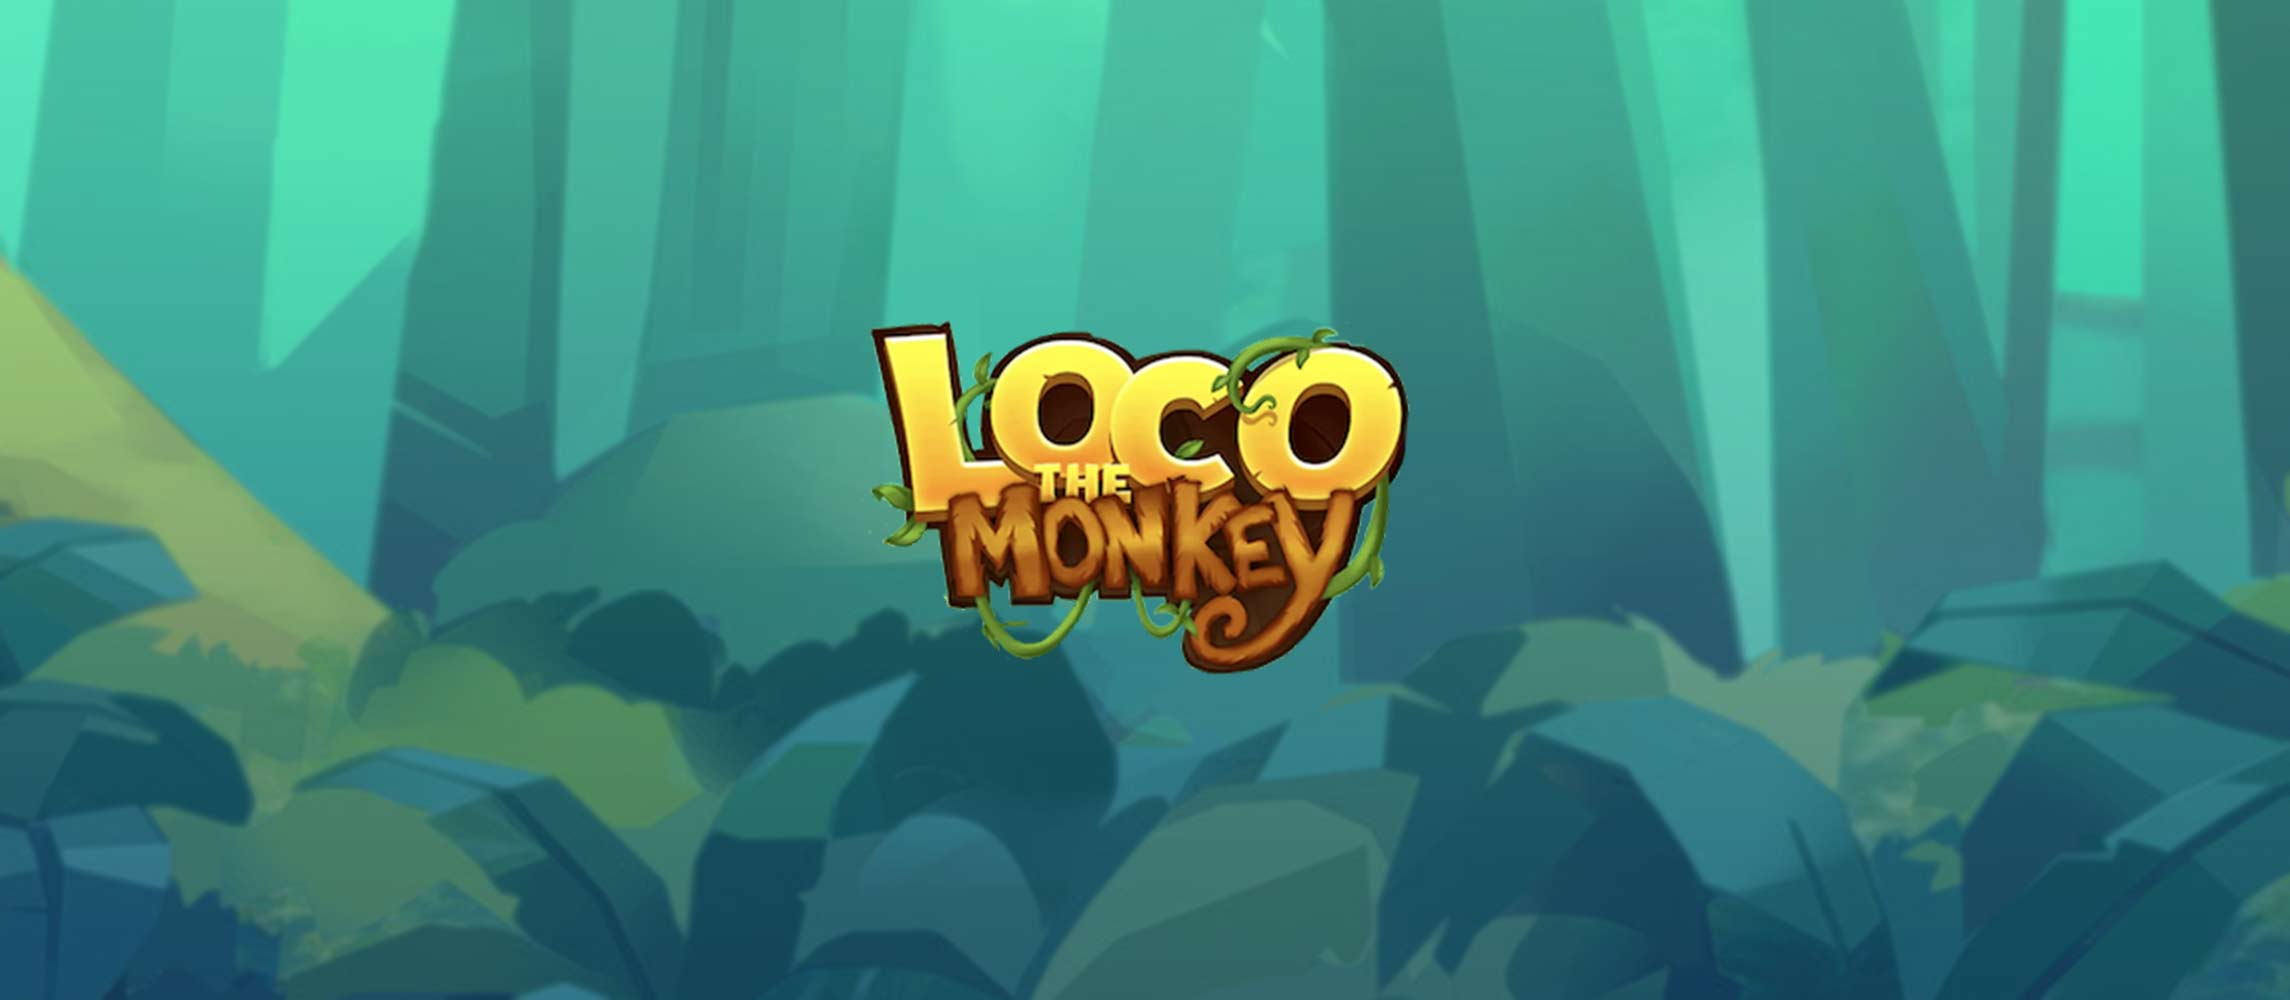 Loco the Monkey by Quickspin